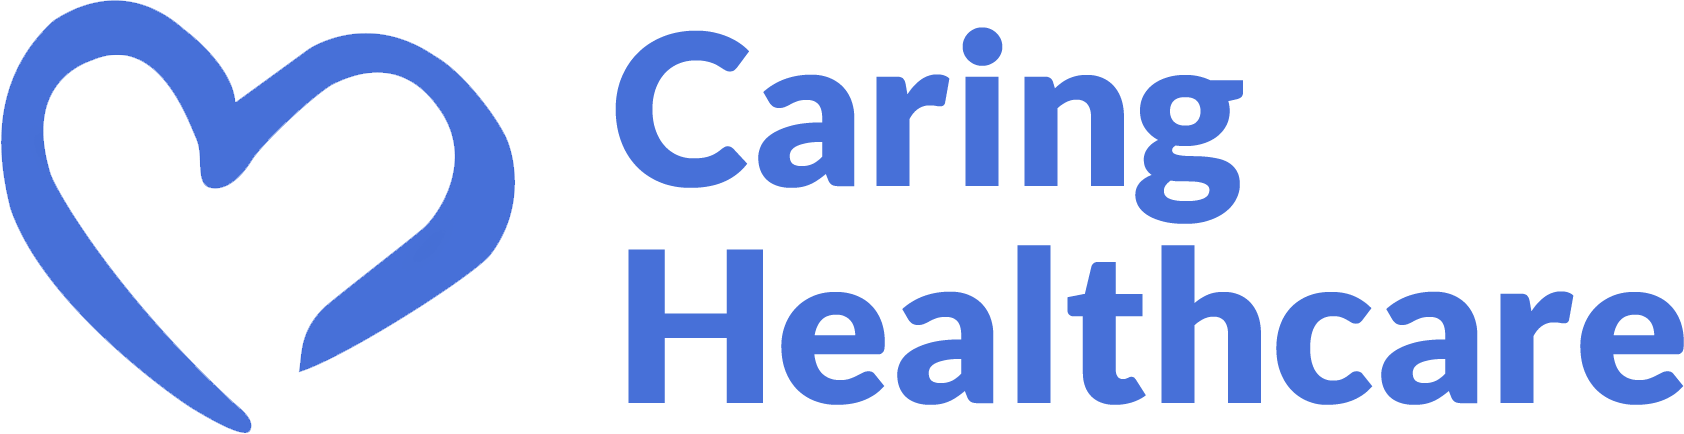 Caring Healthcare